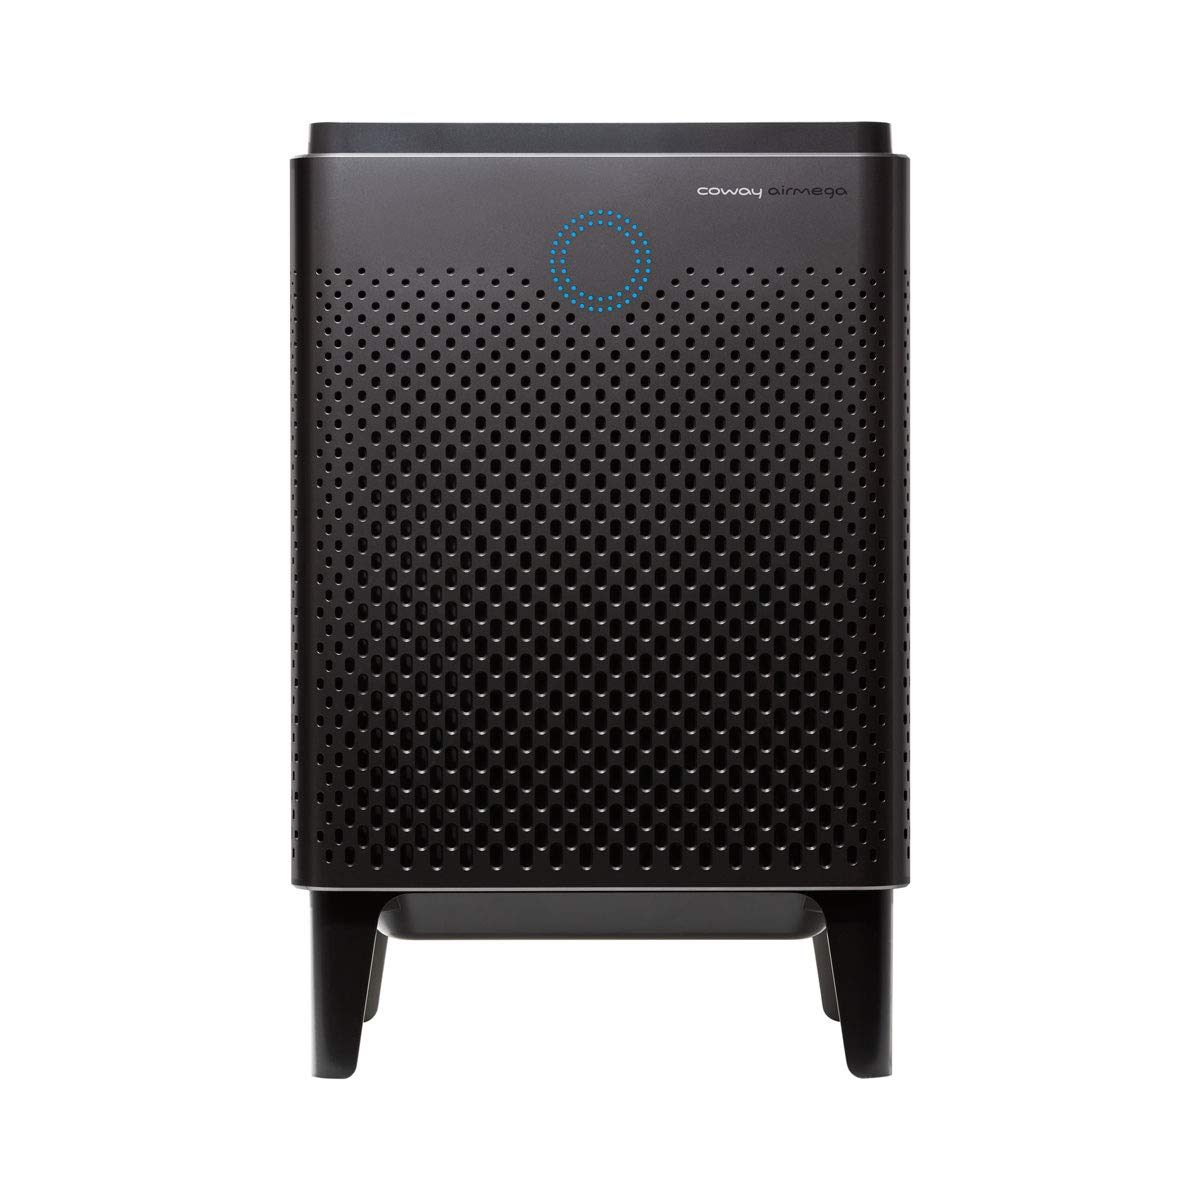 Coway Airmega 400 in Graphite Silver Smart Air Purifier with 1,560 sq. ft. Coverage